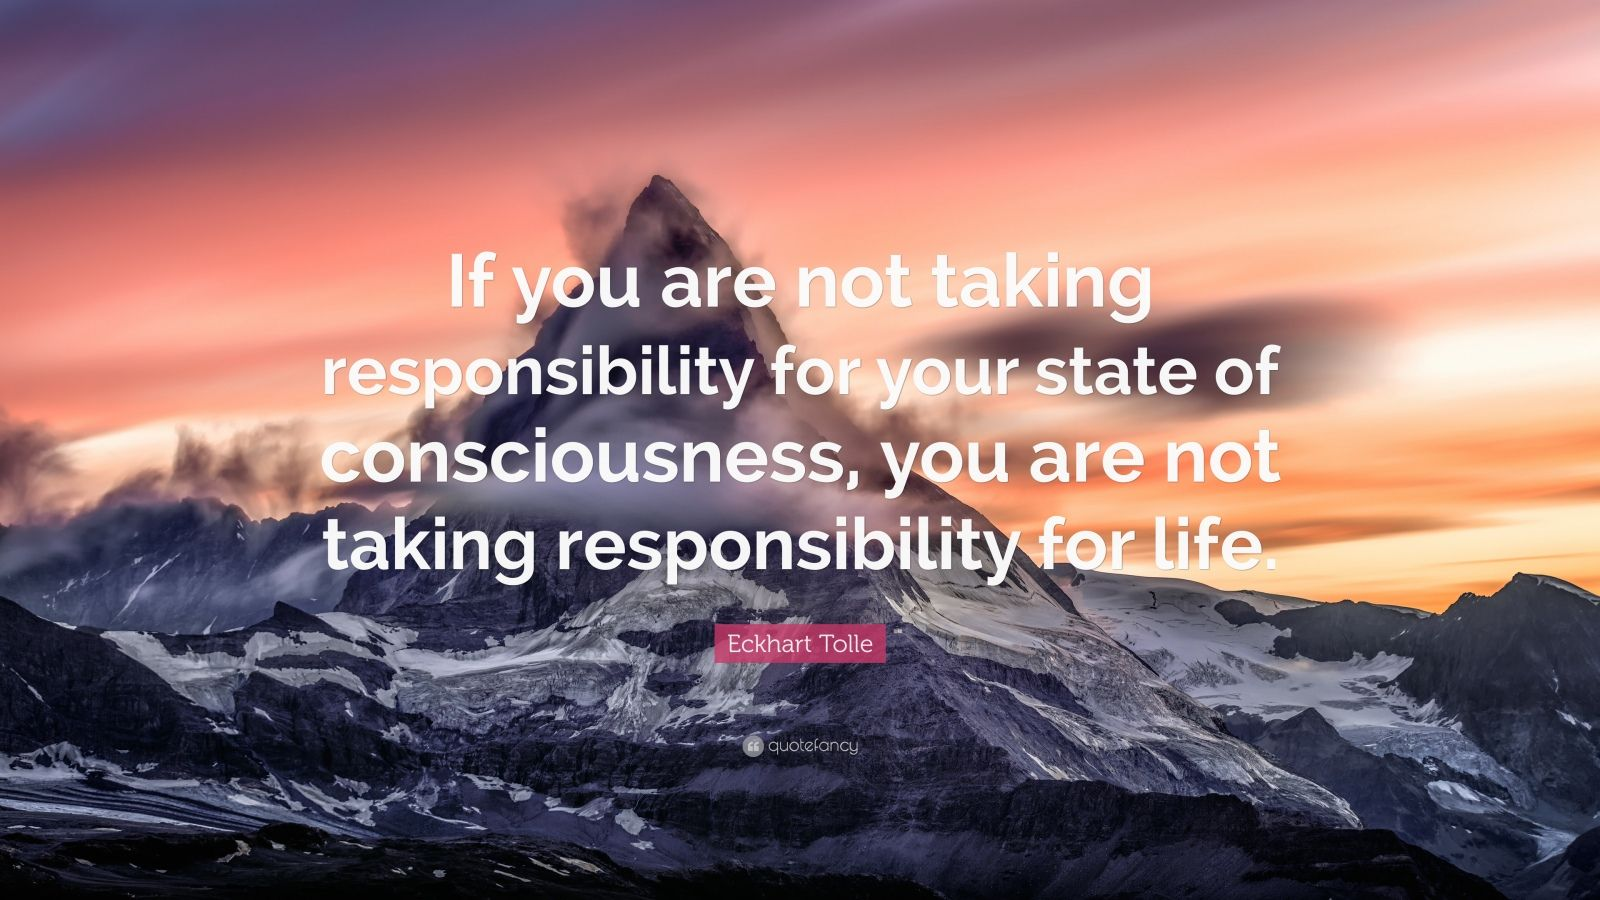 """Eckhart Tolle Quote: """"If you are not taking responsibility for your state of consciousness, you are not taking responsibility for life."""""""